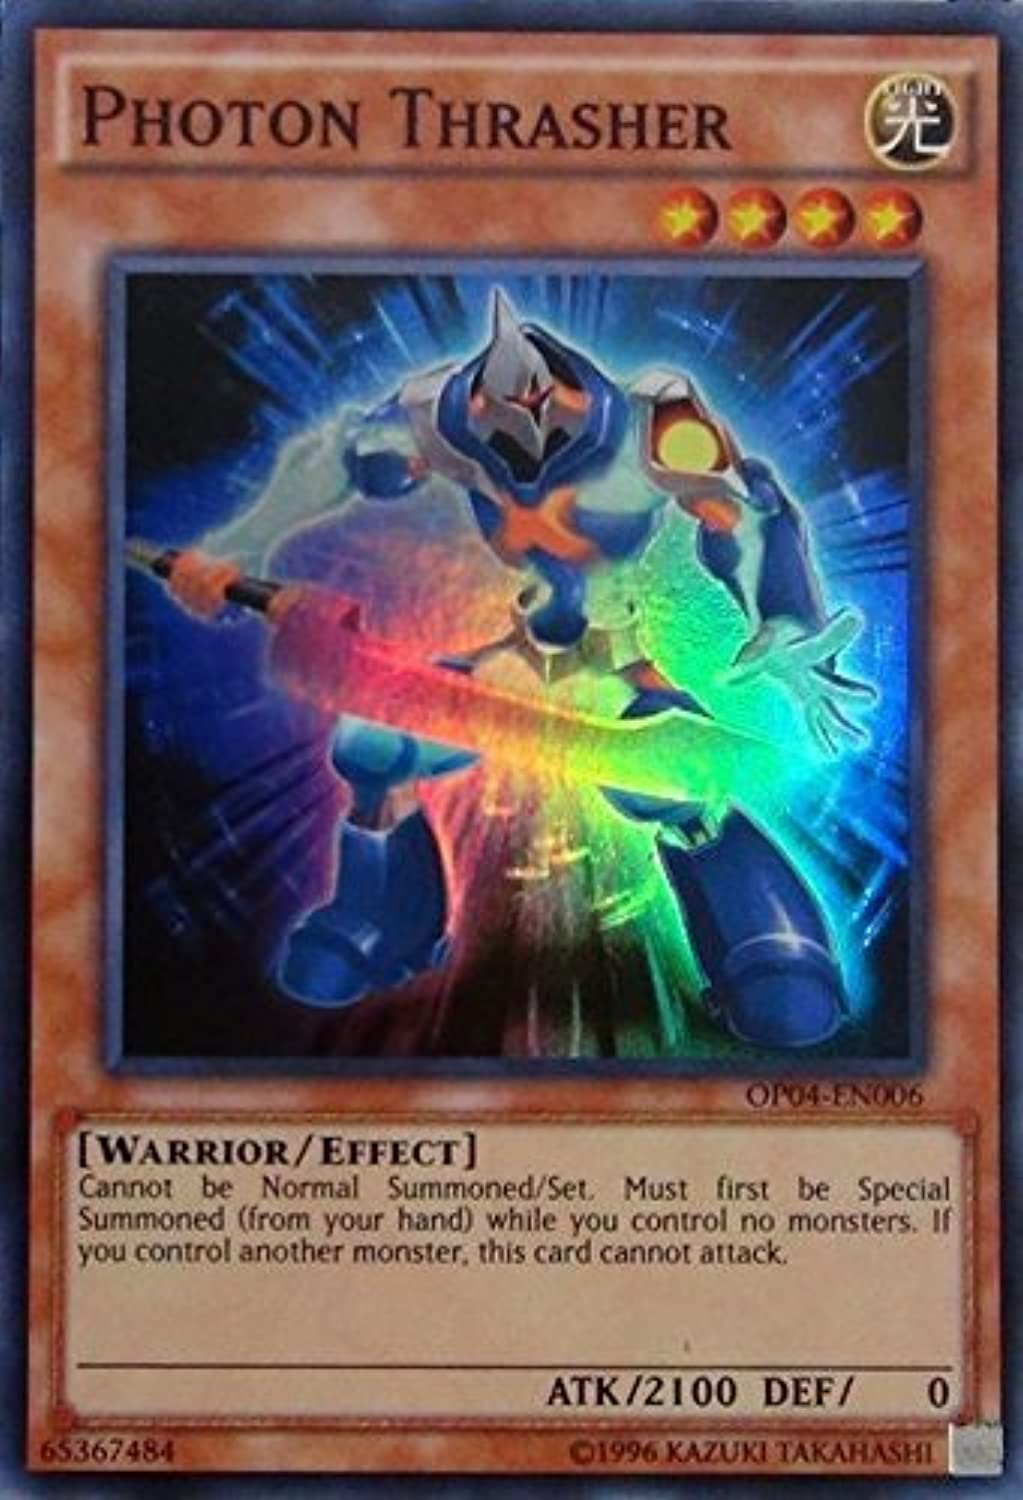 Yugioh Photon Thrasher OP04-EN006 Super Rare Unlimited Edition OTS Tournament Pack 4 Cards